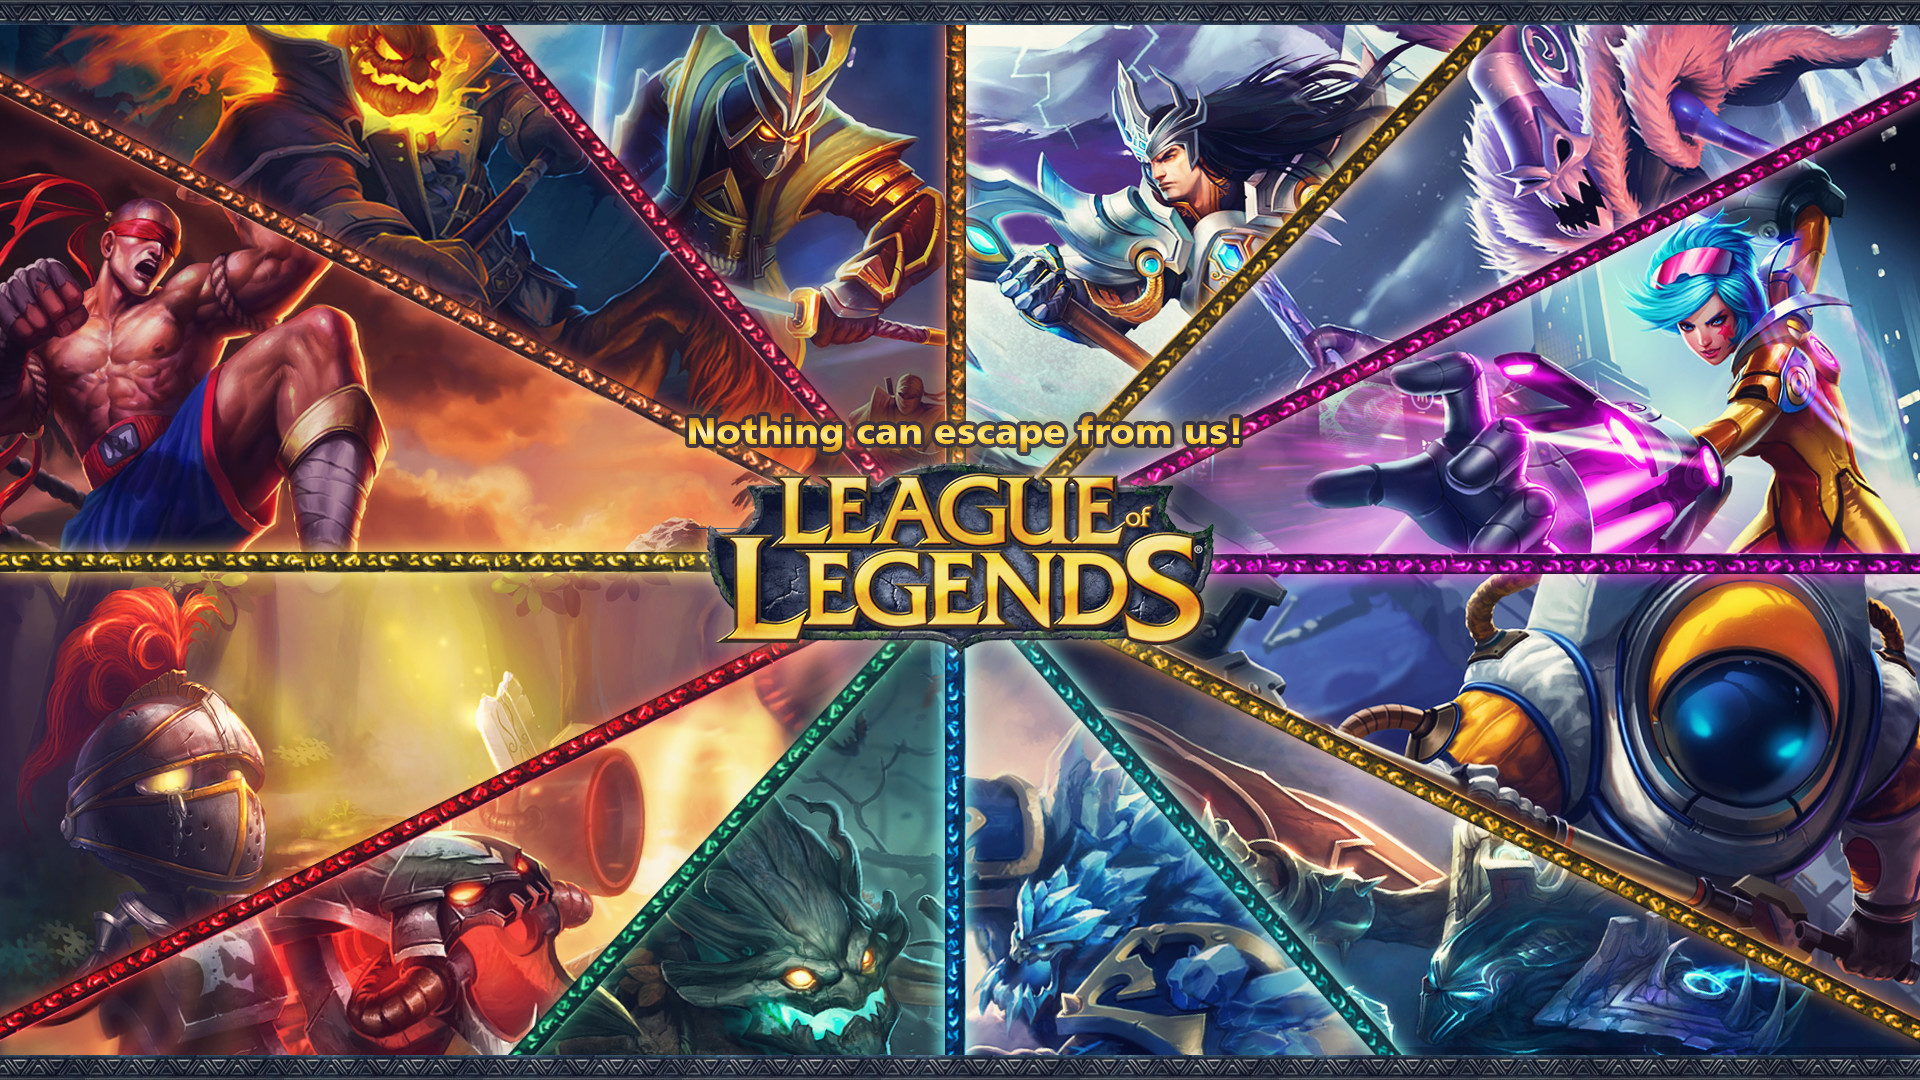 League Of Legends Hd Wallpaper Posted By Ethan Peltier